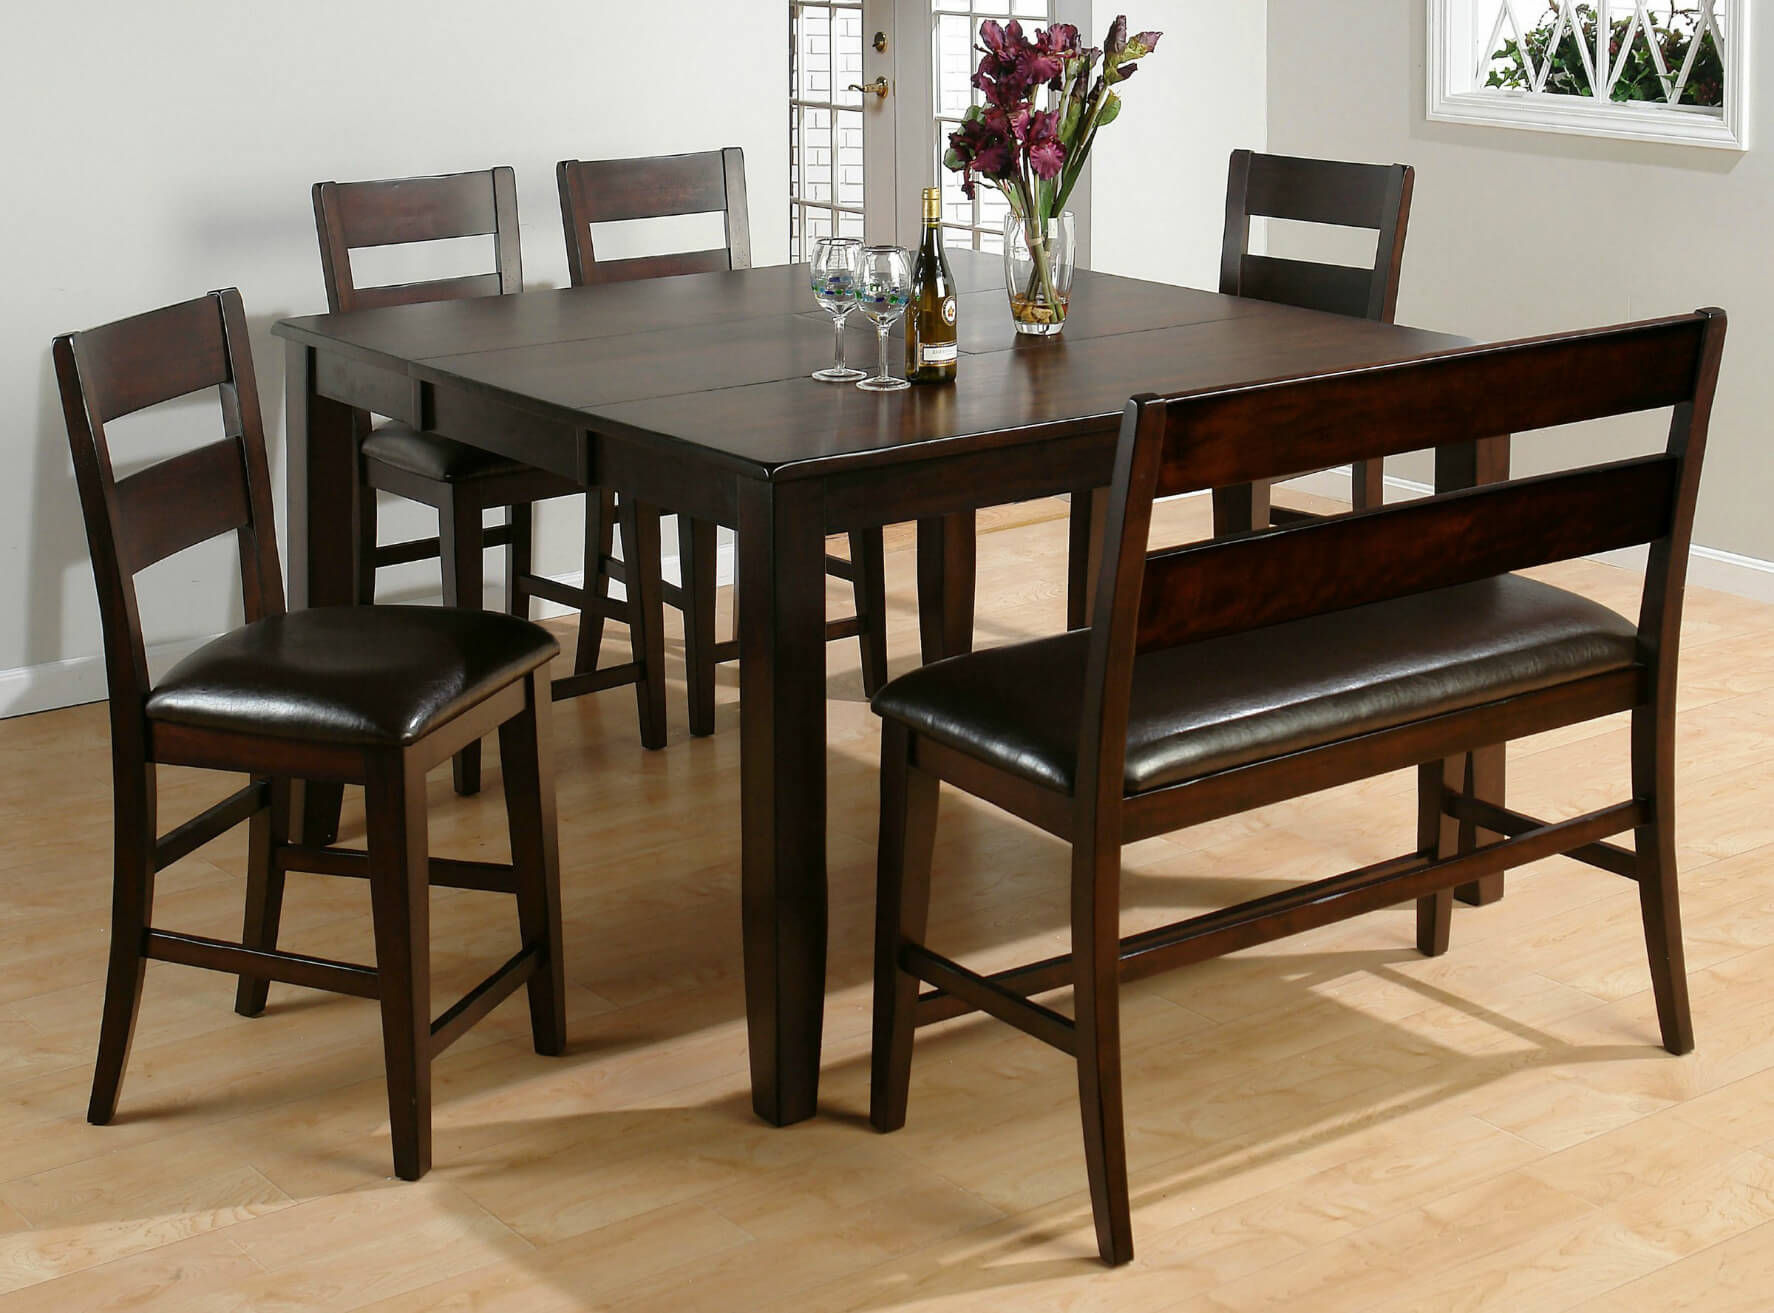 dining room table with bench and chairs 26 big small dining room sets with bench seating dining STQVJHW